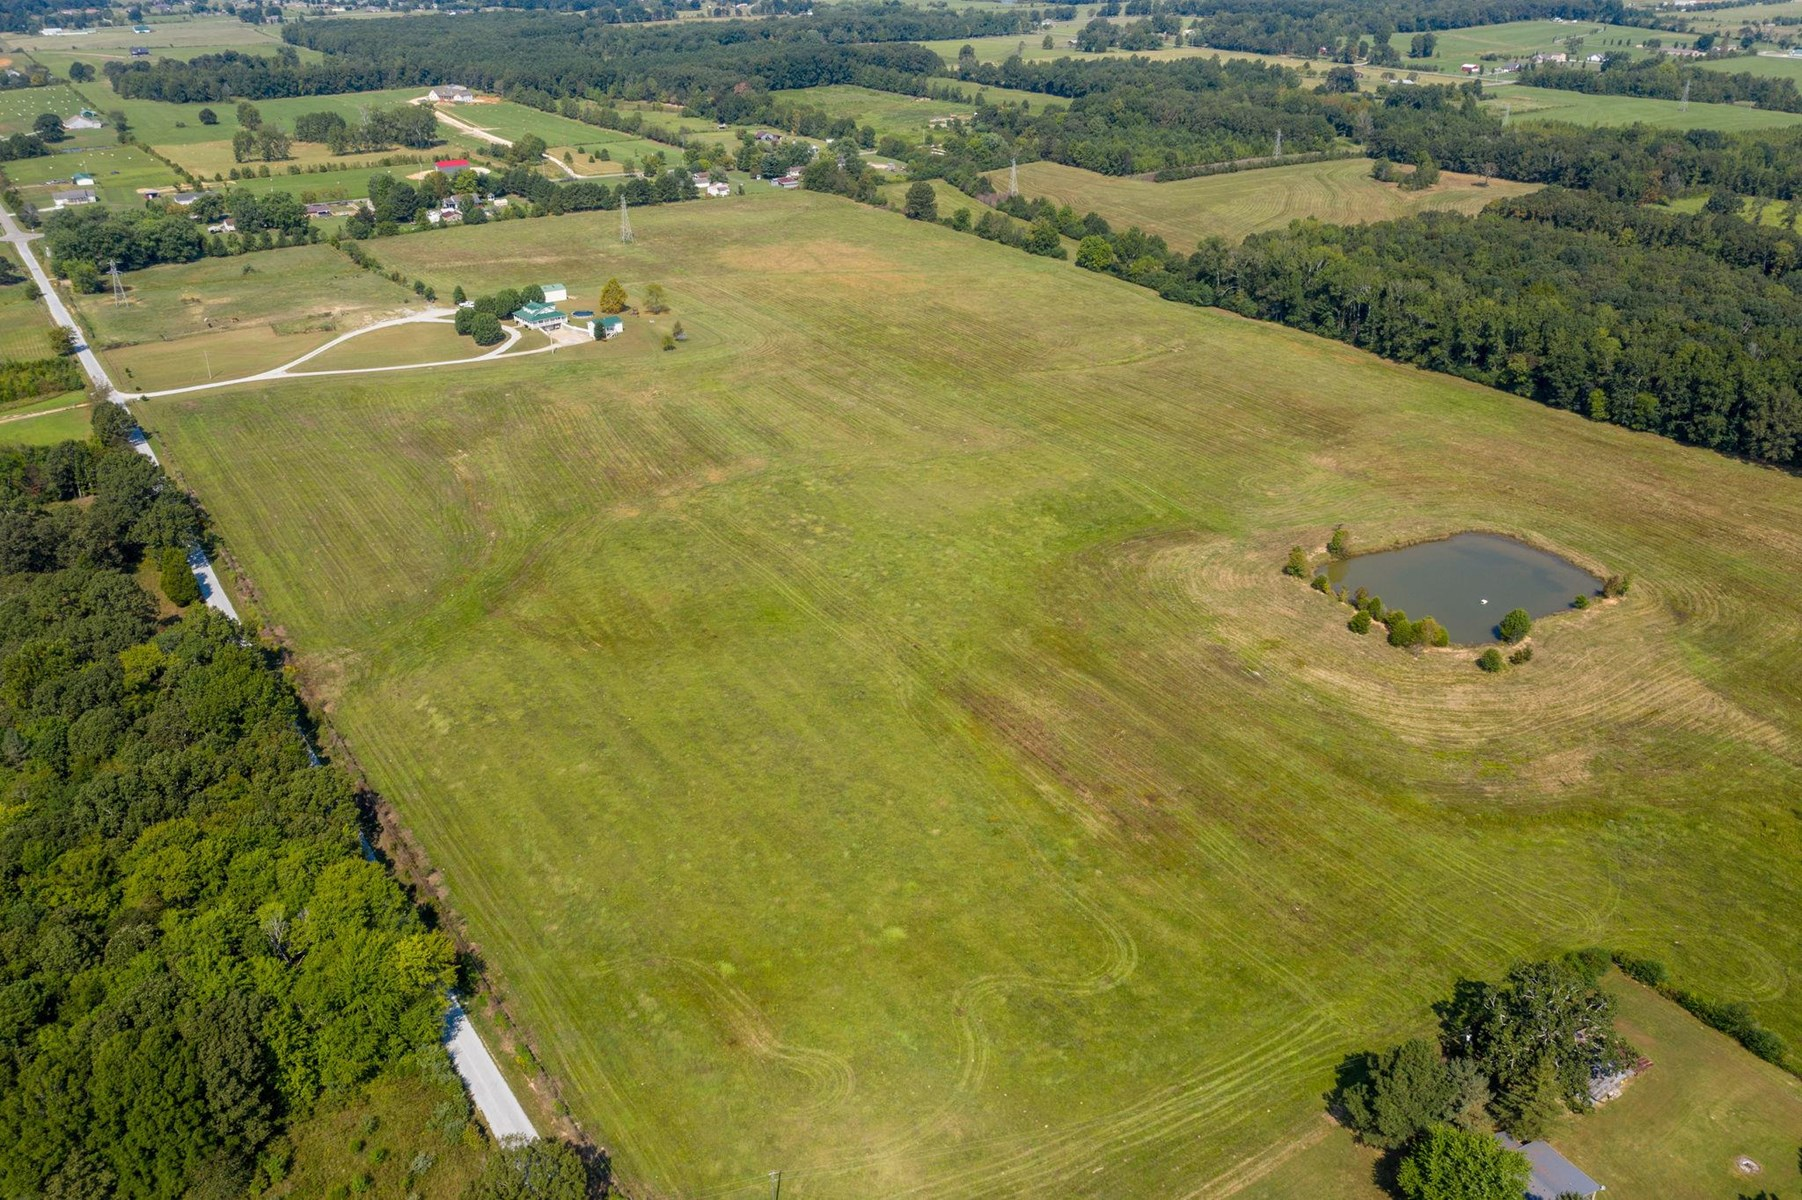 Farm Land for Sale with Acreage, in Hohenwald, Tennessee